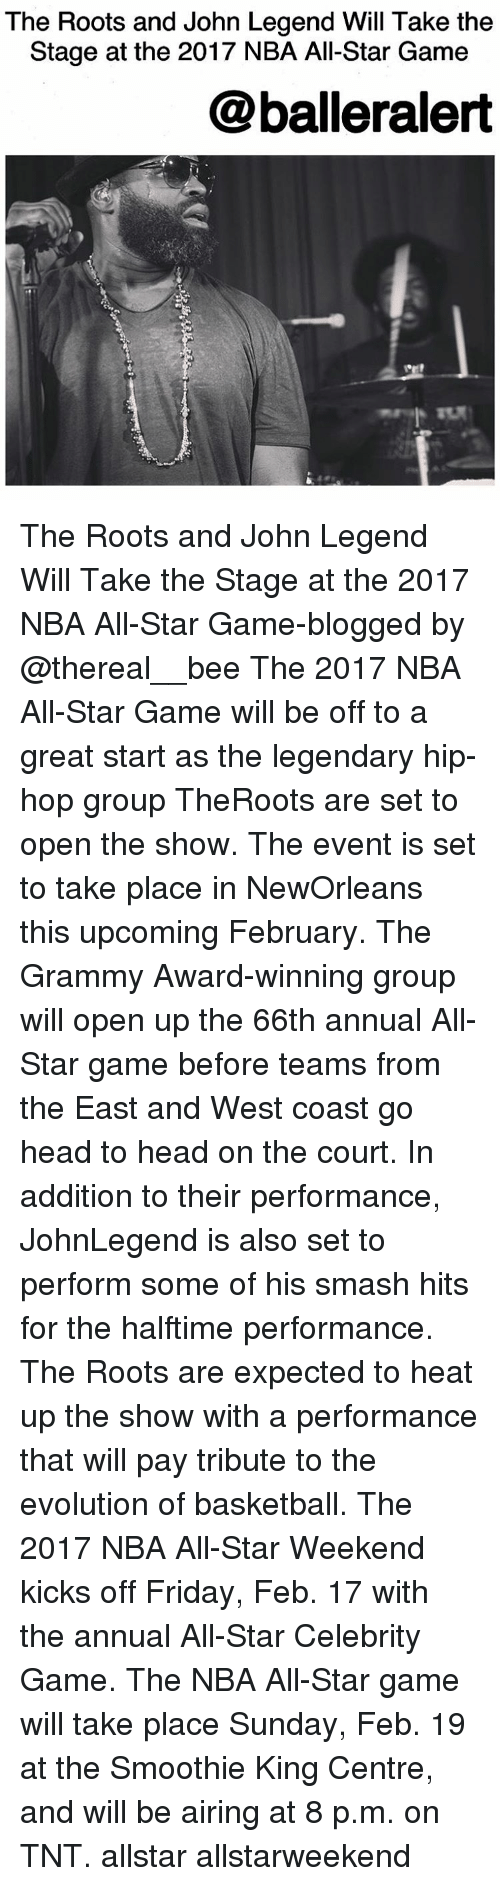 nba all stars: The Roots and John Legend Will Take the  Stage at the 2017 NBA All-Star Game  @balleralert The Roots and John Legend Will Take the Stage at the 2017 NBA All-Star Game-blogged by @thereal__bee The 2017 NBA All-Star Game will be off to a great start as the legendary hip-hop group TheRoots are set to open the show. The event is set to take place in NewOrleans this upcoming February. The Grammy Award-winning group will open up the 66th annual All-Star game before teams from the East and West coast go head to head on the court. In addition to their performance, JohnLegend is also set to perform some of his smash hits for the halftime performance. The Roots are expected to heat up the show with a performance that will pay tribute to the evolution of basketball. The 2017 NBA All-Star Weekend kicks off Friday, Feb. 17 with the annual All-Star Celebrity Game. The NBA All-Star game will take place Sunday, Feb. 19 at the Smoothie King Centre, and will be airing at 8 p.m. on TNT. allstar allstarweekend